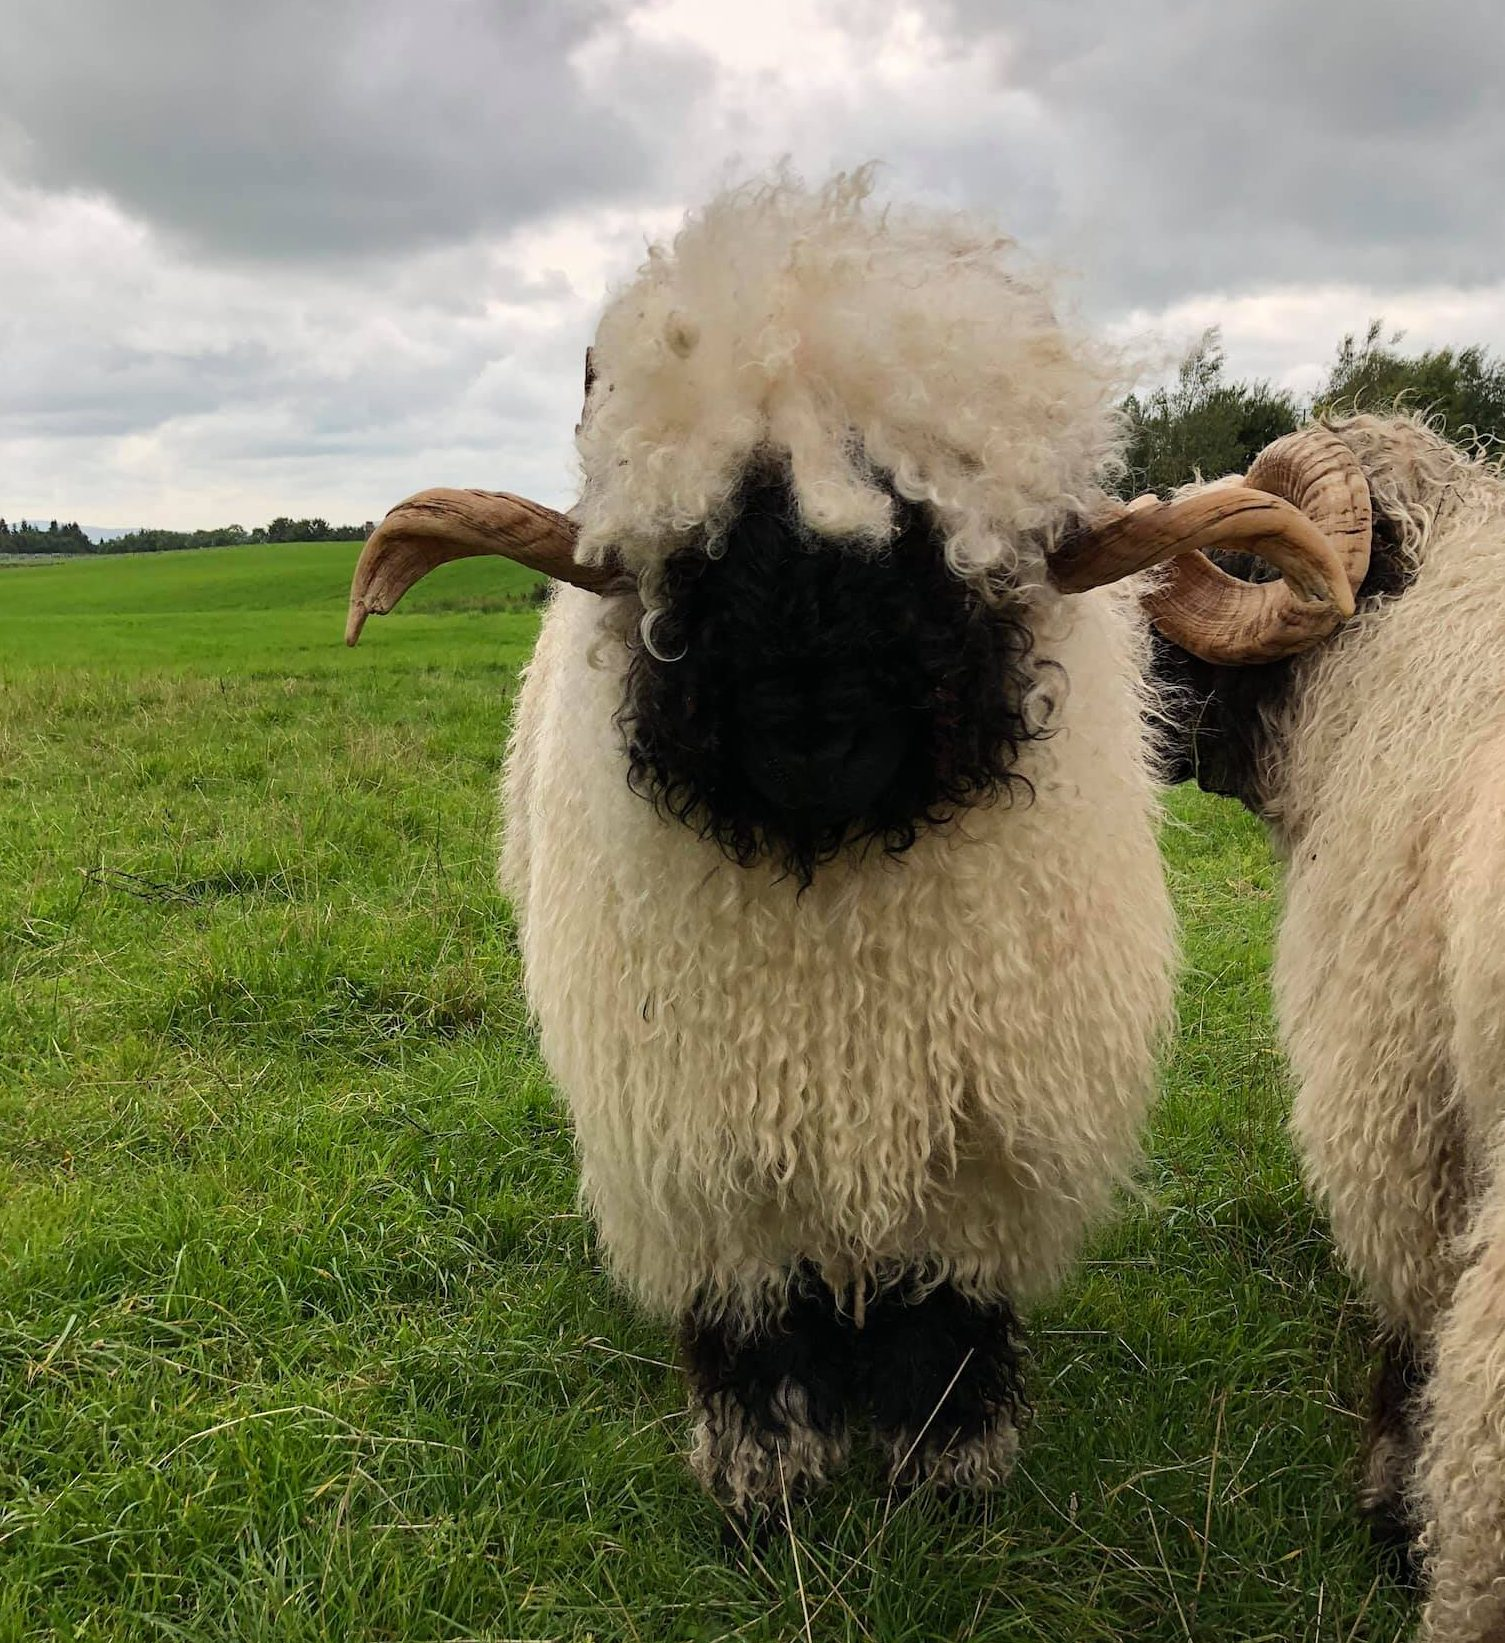 For Sale And Wanted Valais Blacknose Sheep Society